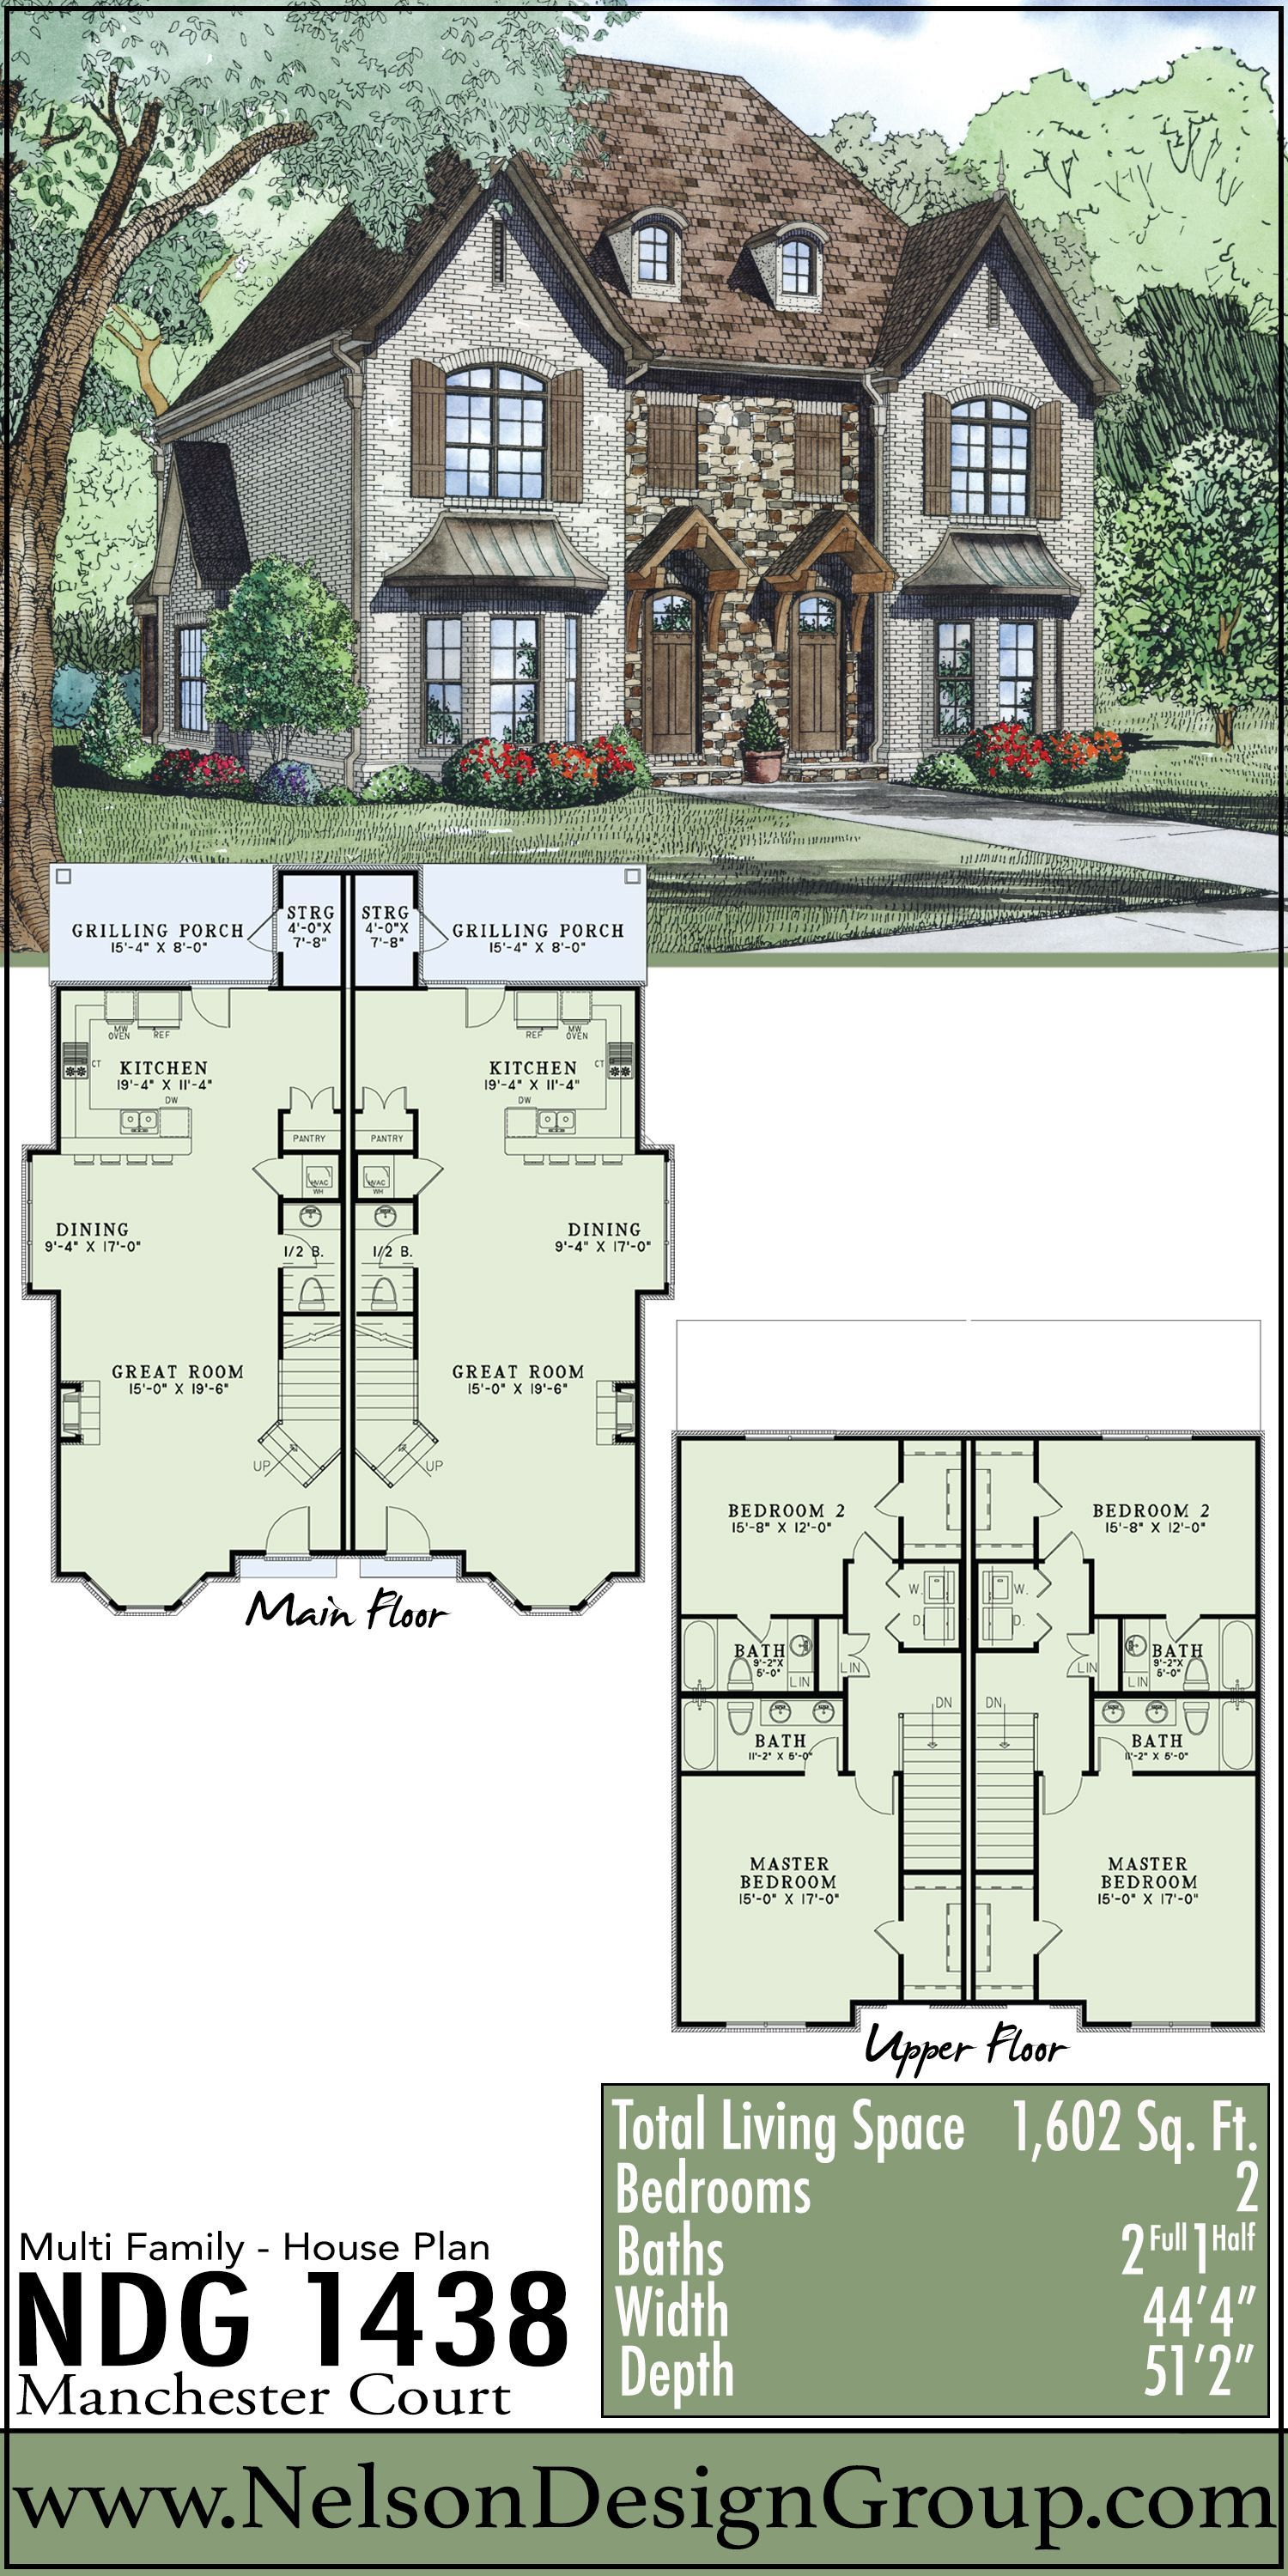 Houses And House Plans 2020 Sims House Plans Family House Plans House Plans